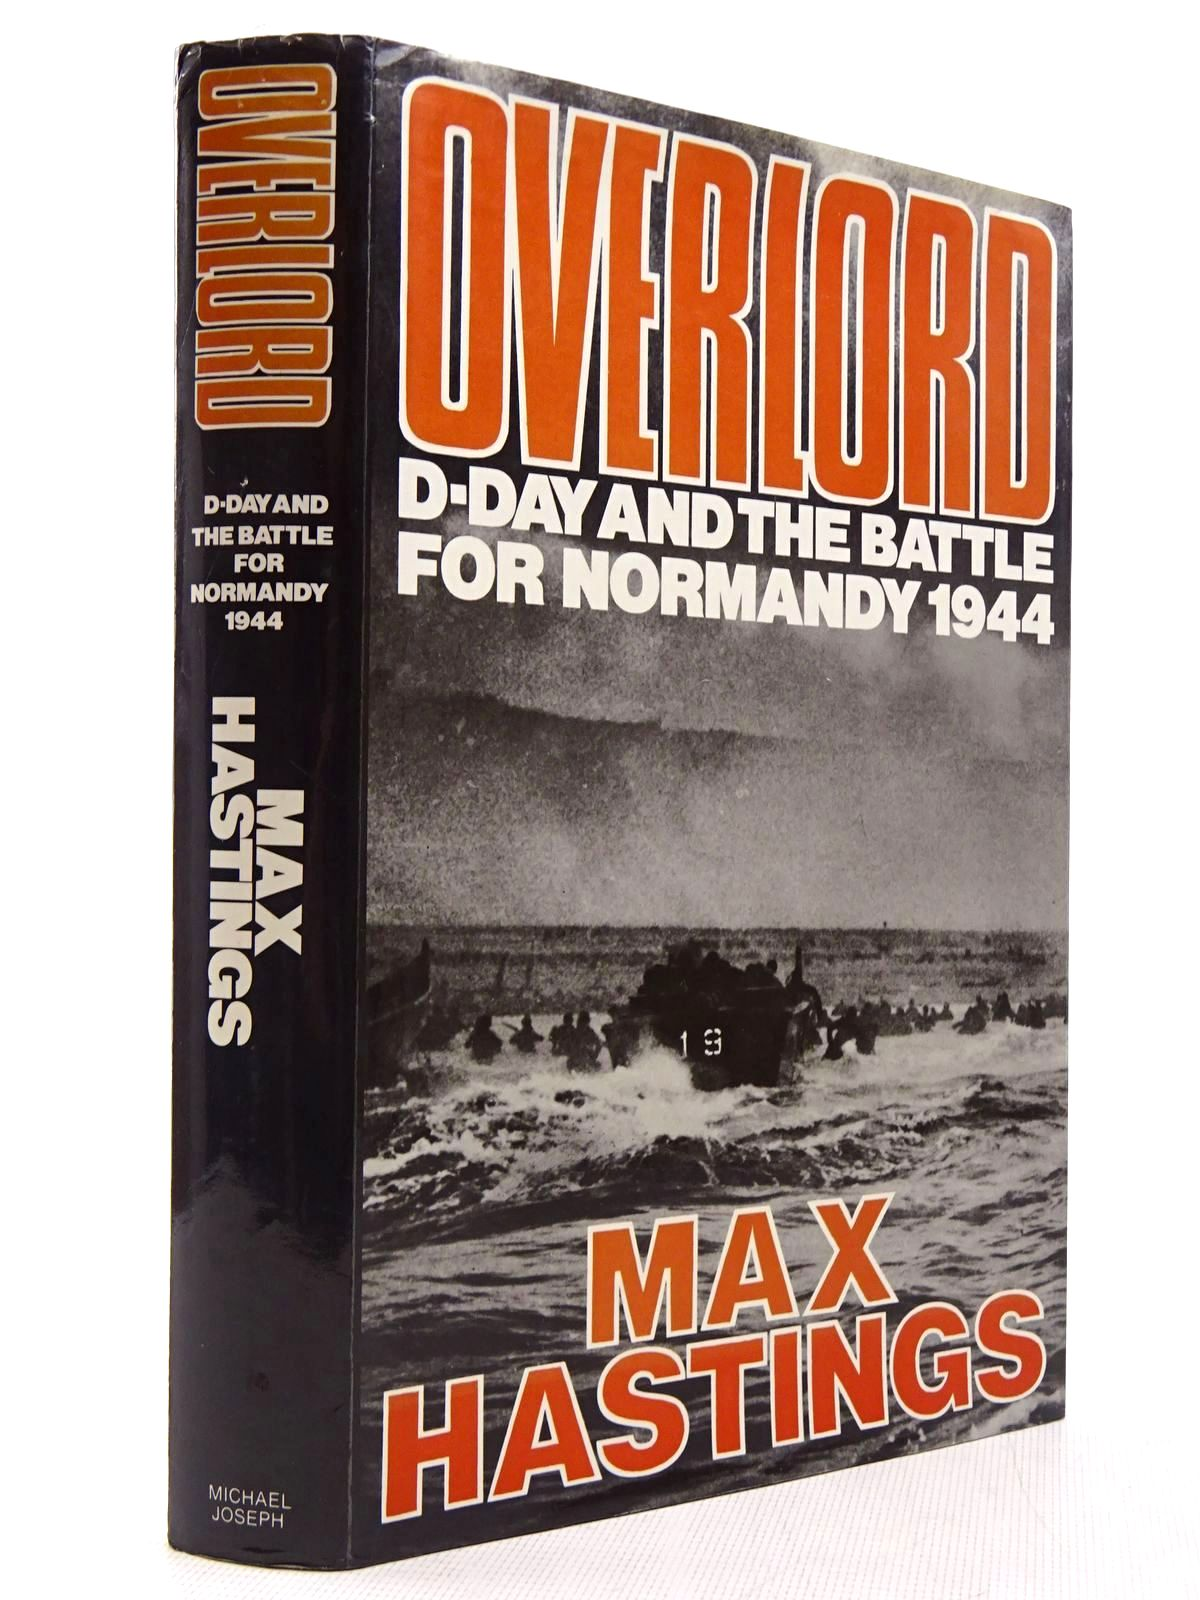 Photo of OVERLORD D-DAY AND THE BATTLE FOR NORMANDY 1944 written by Hastings, Max published by Michael Joseph (STOCK CODE: 2128885)  for sale by Stella & Rose's Books